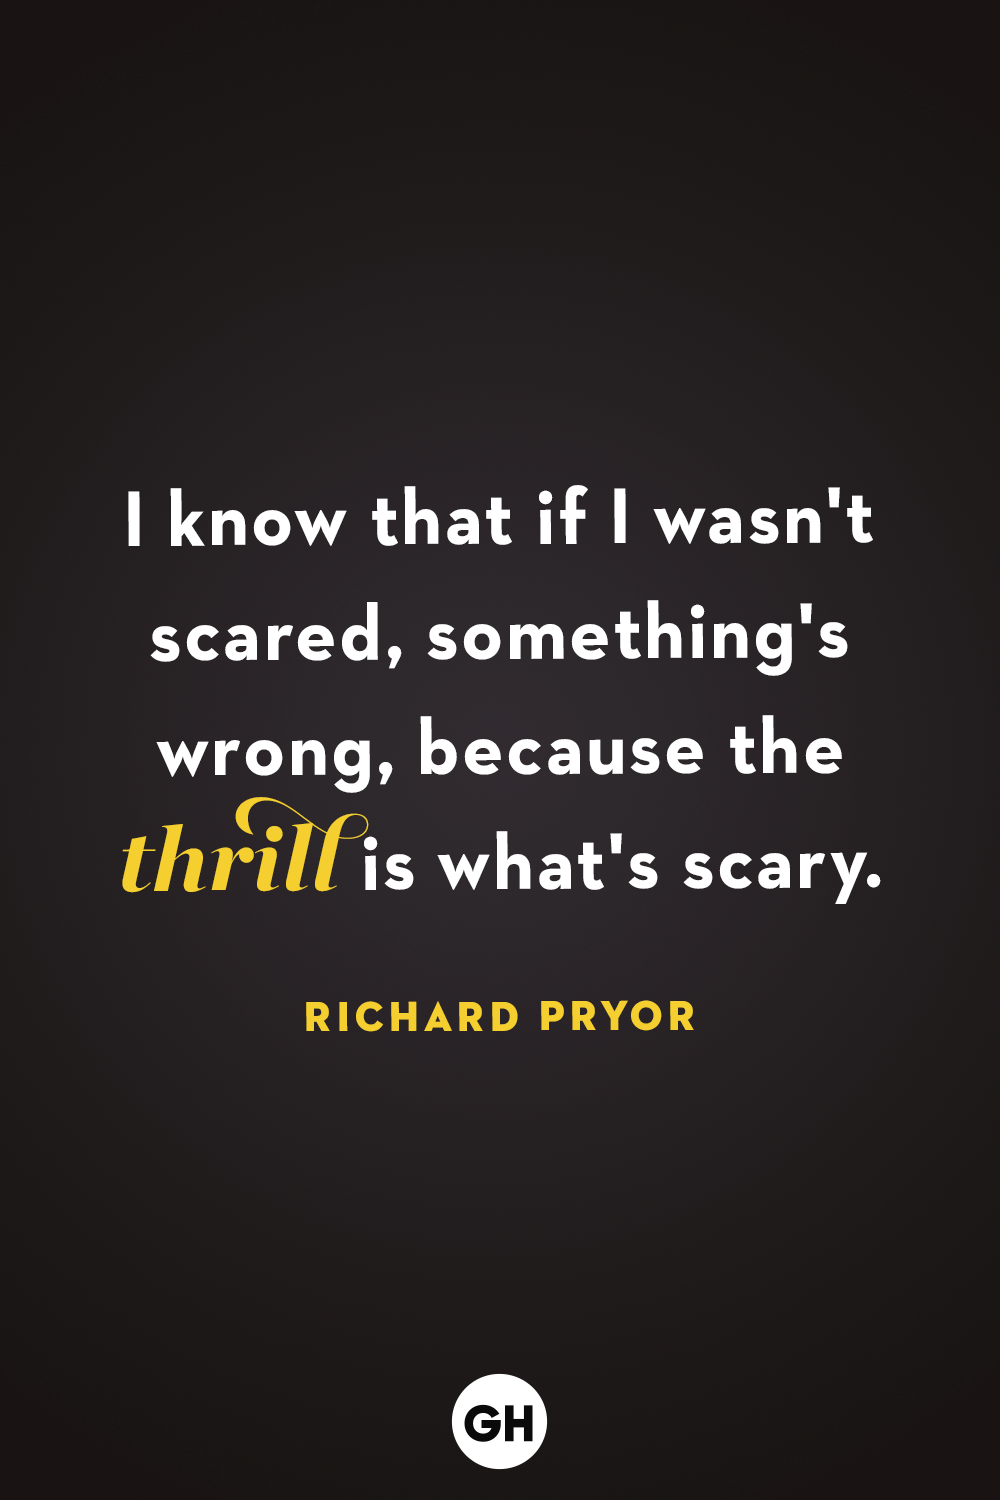 30 Best Scary Quotes - Creepy Sayings from Movies & Books